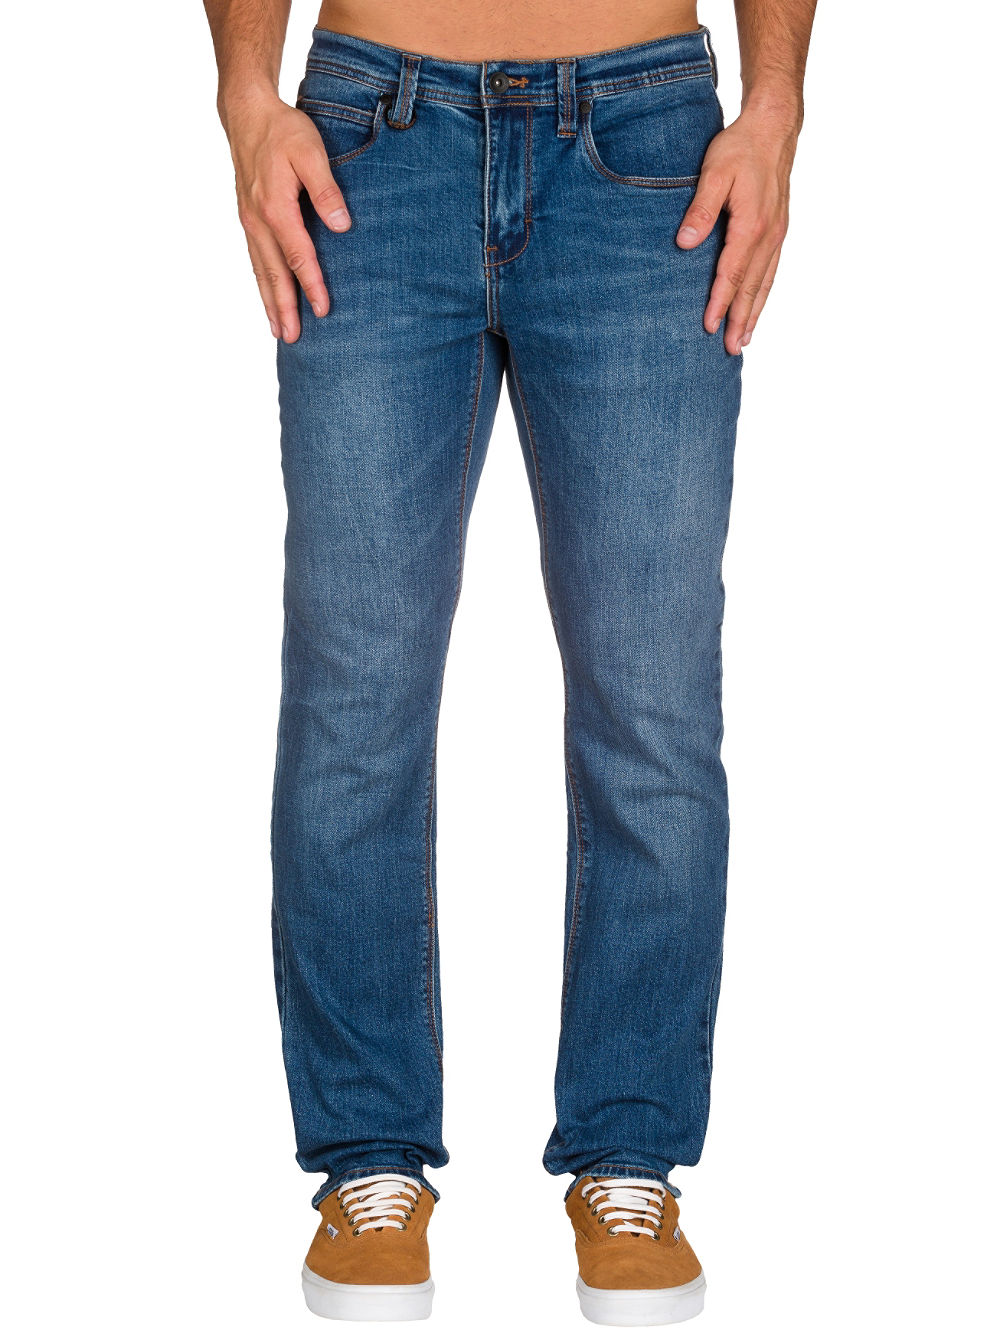 Kinetic Jeans